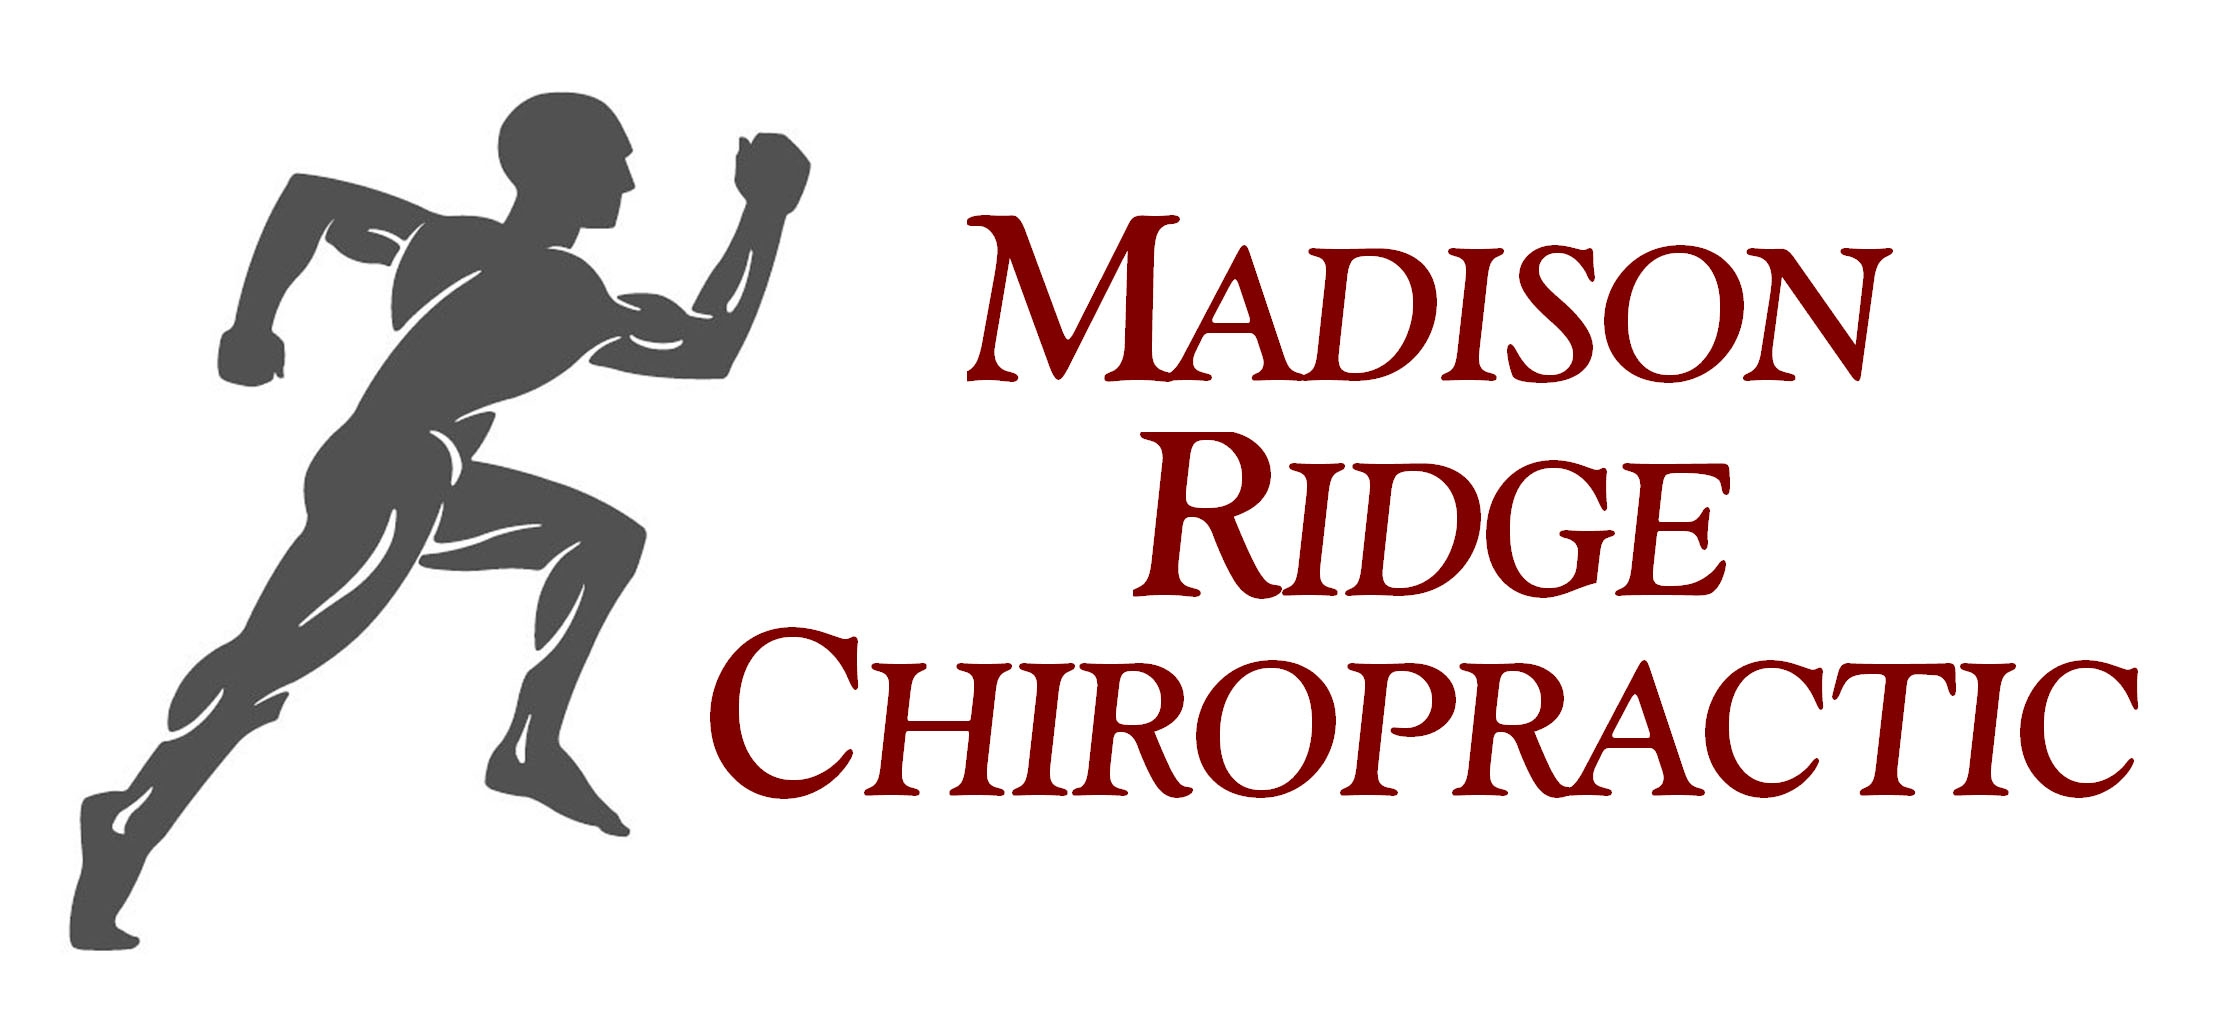 Madison Ridge Chiropractic